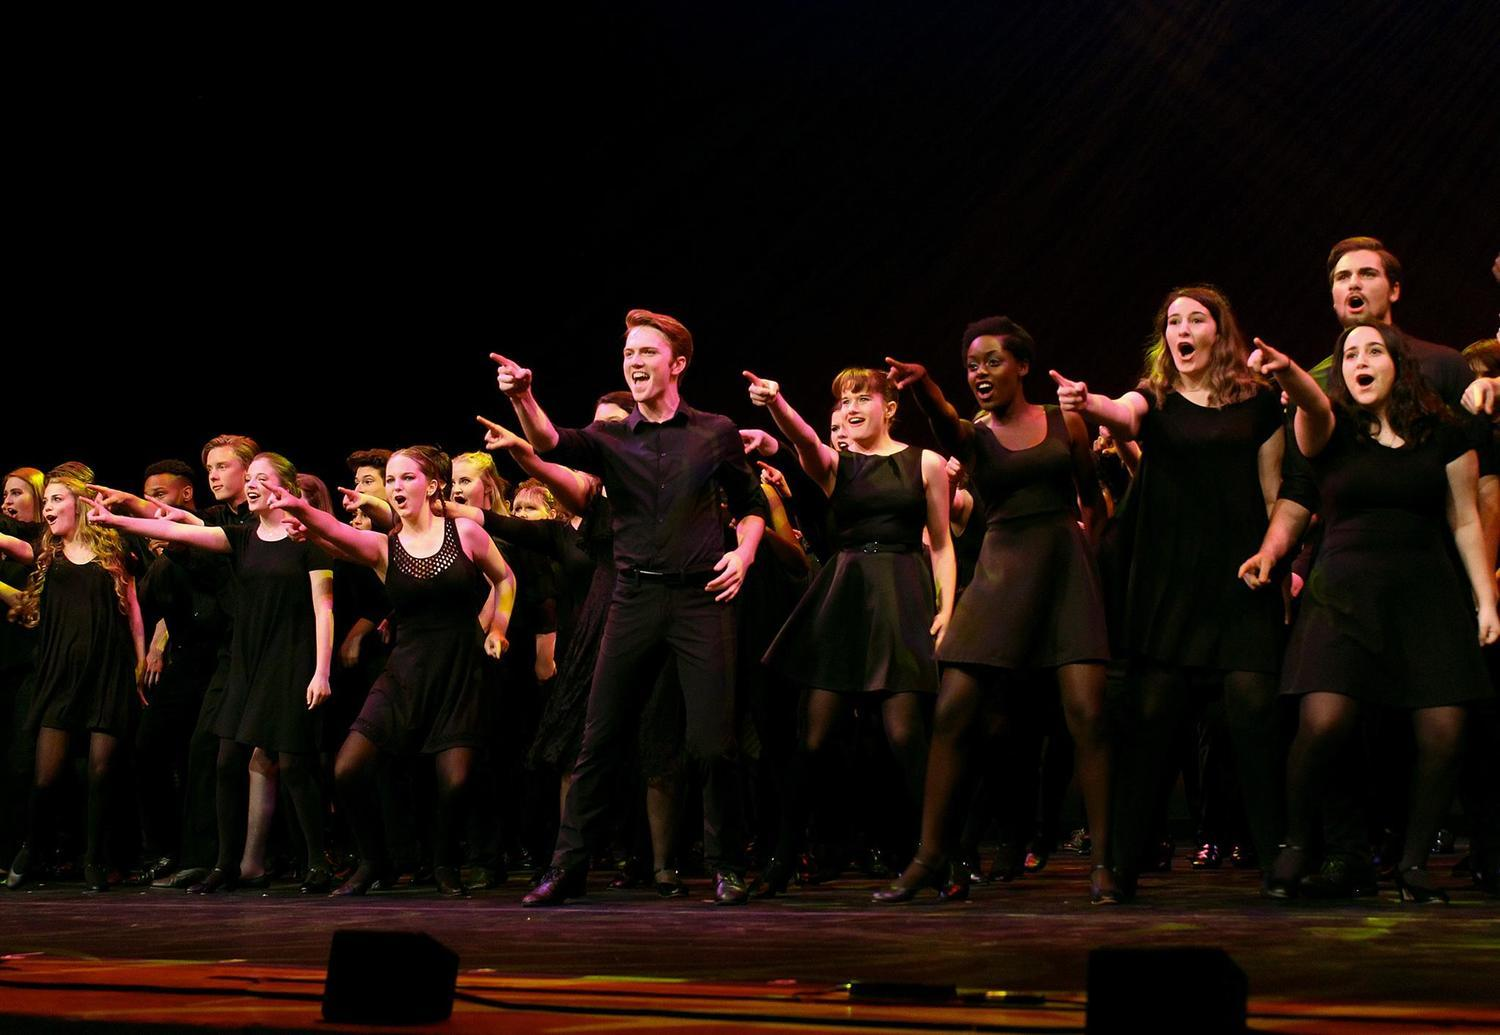 BWW Feature: At the Blumey Awards, High Schoolers Get The Spotlight